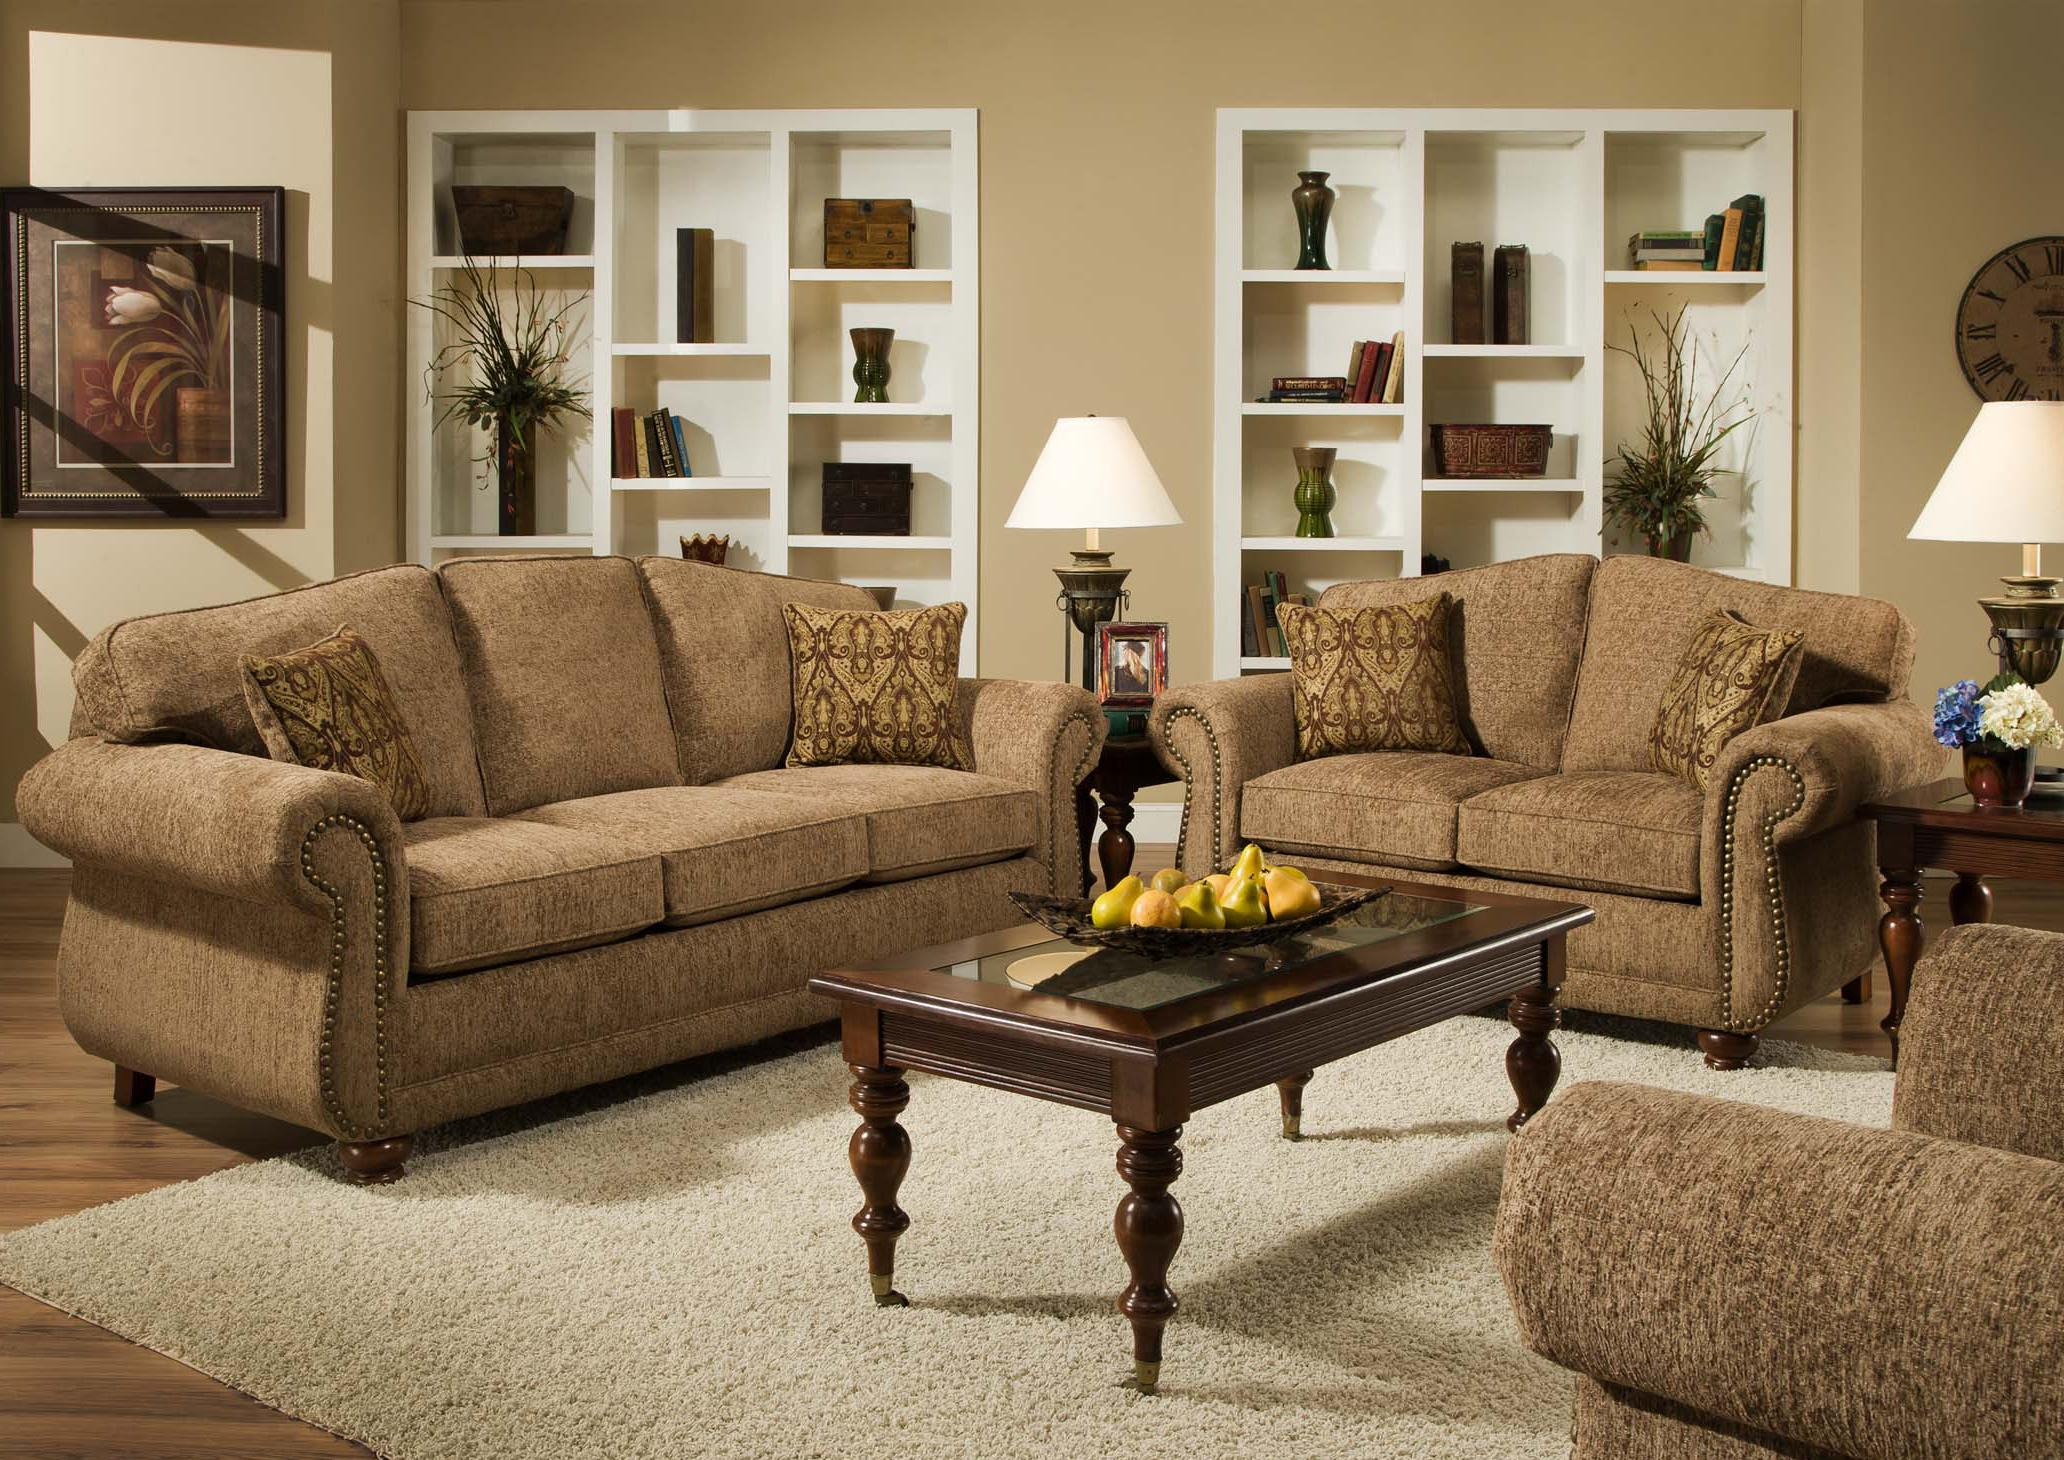 Elegant Wilcox Furniture For Home Furniture With Wilcox Furniture Corpus Christi